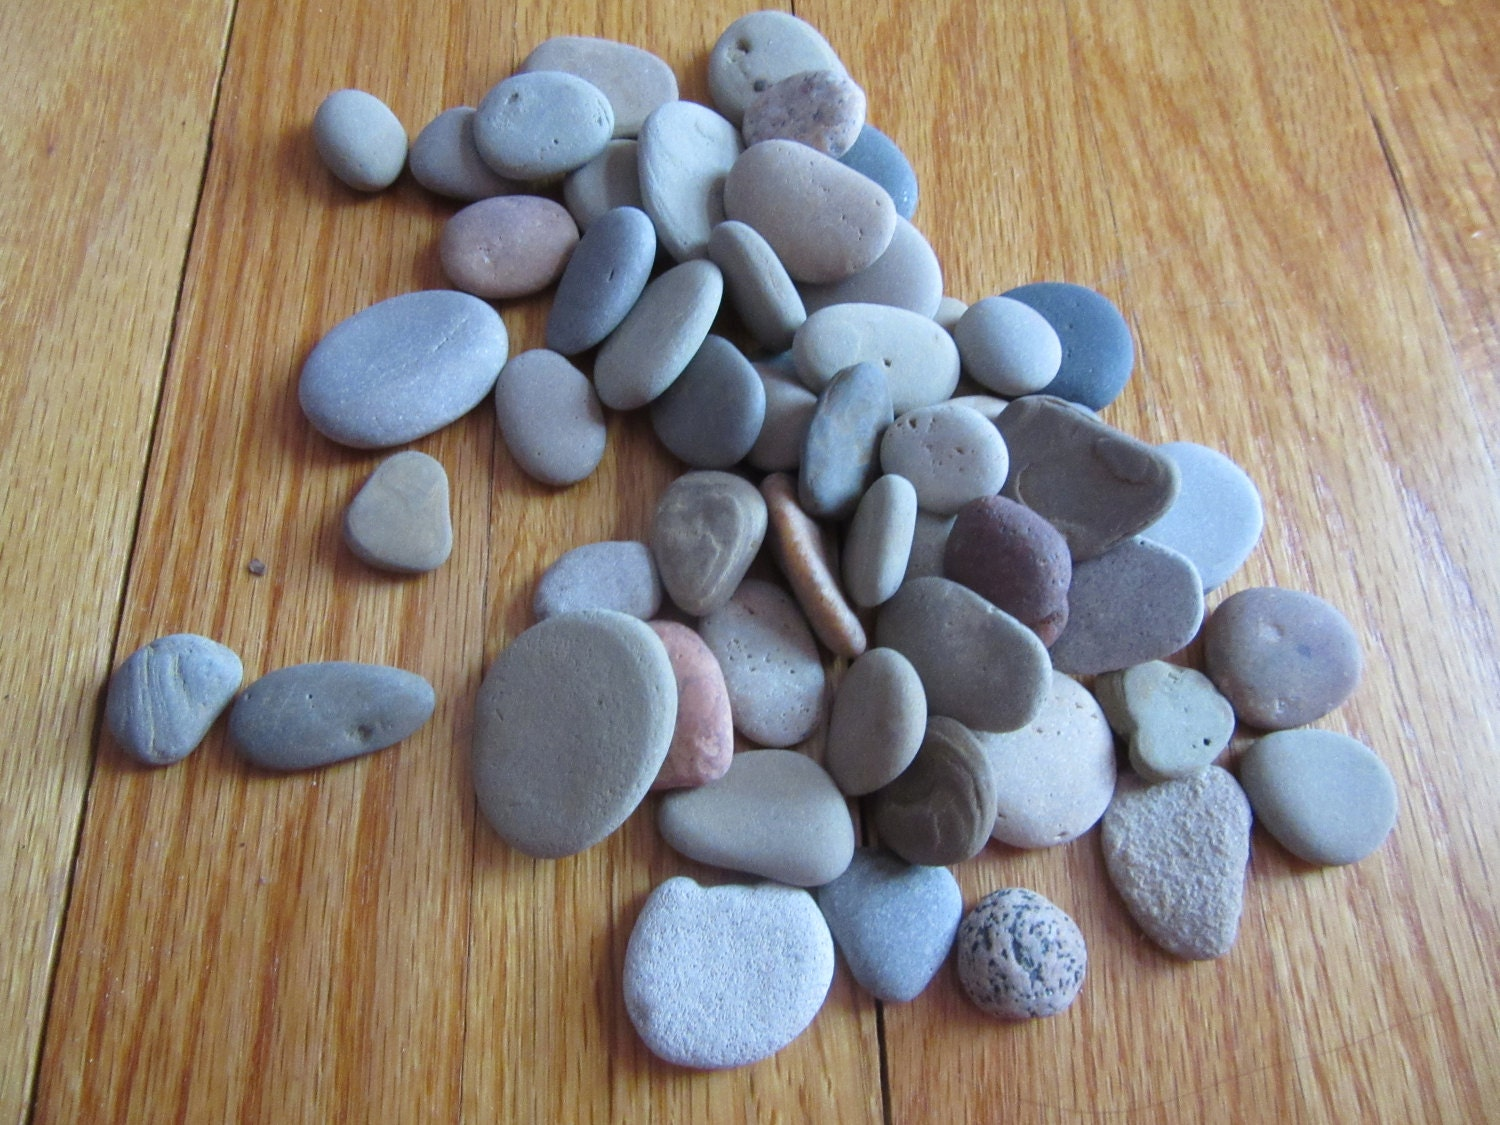 Lot of 50 flat stones lake michigan stone craft mosaic stone for Flat stones for crafts